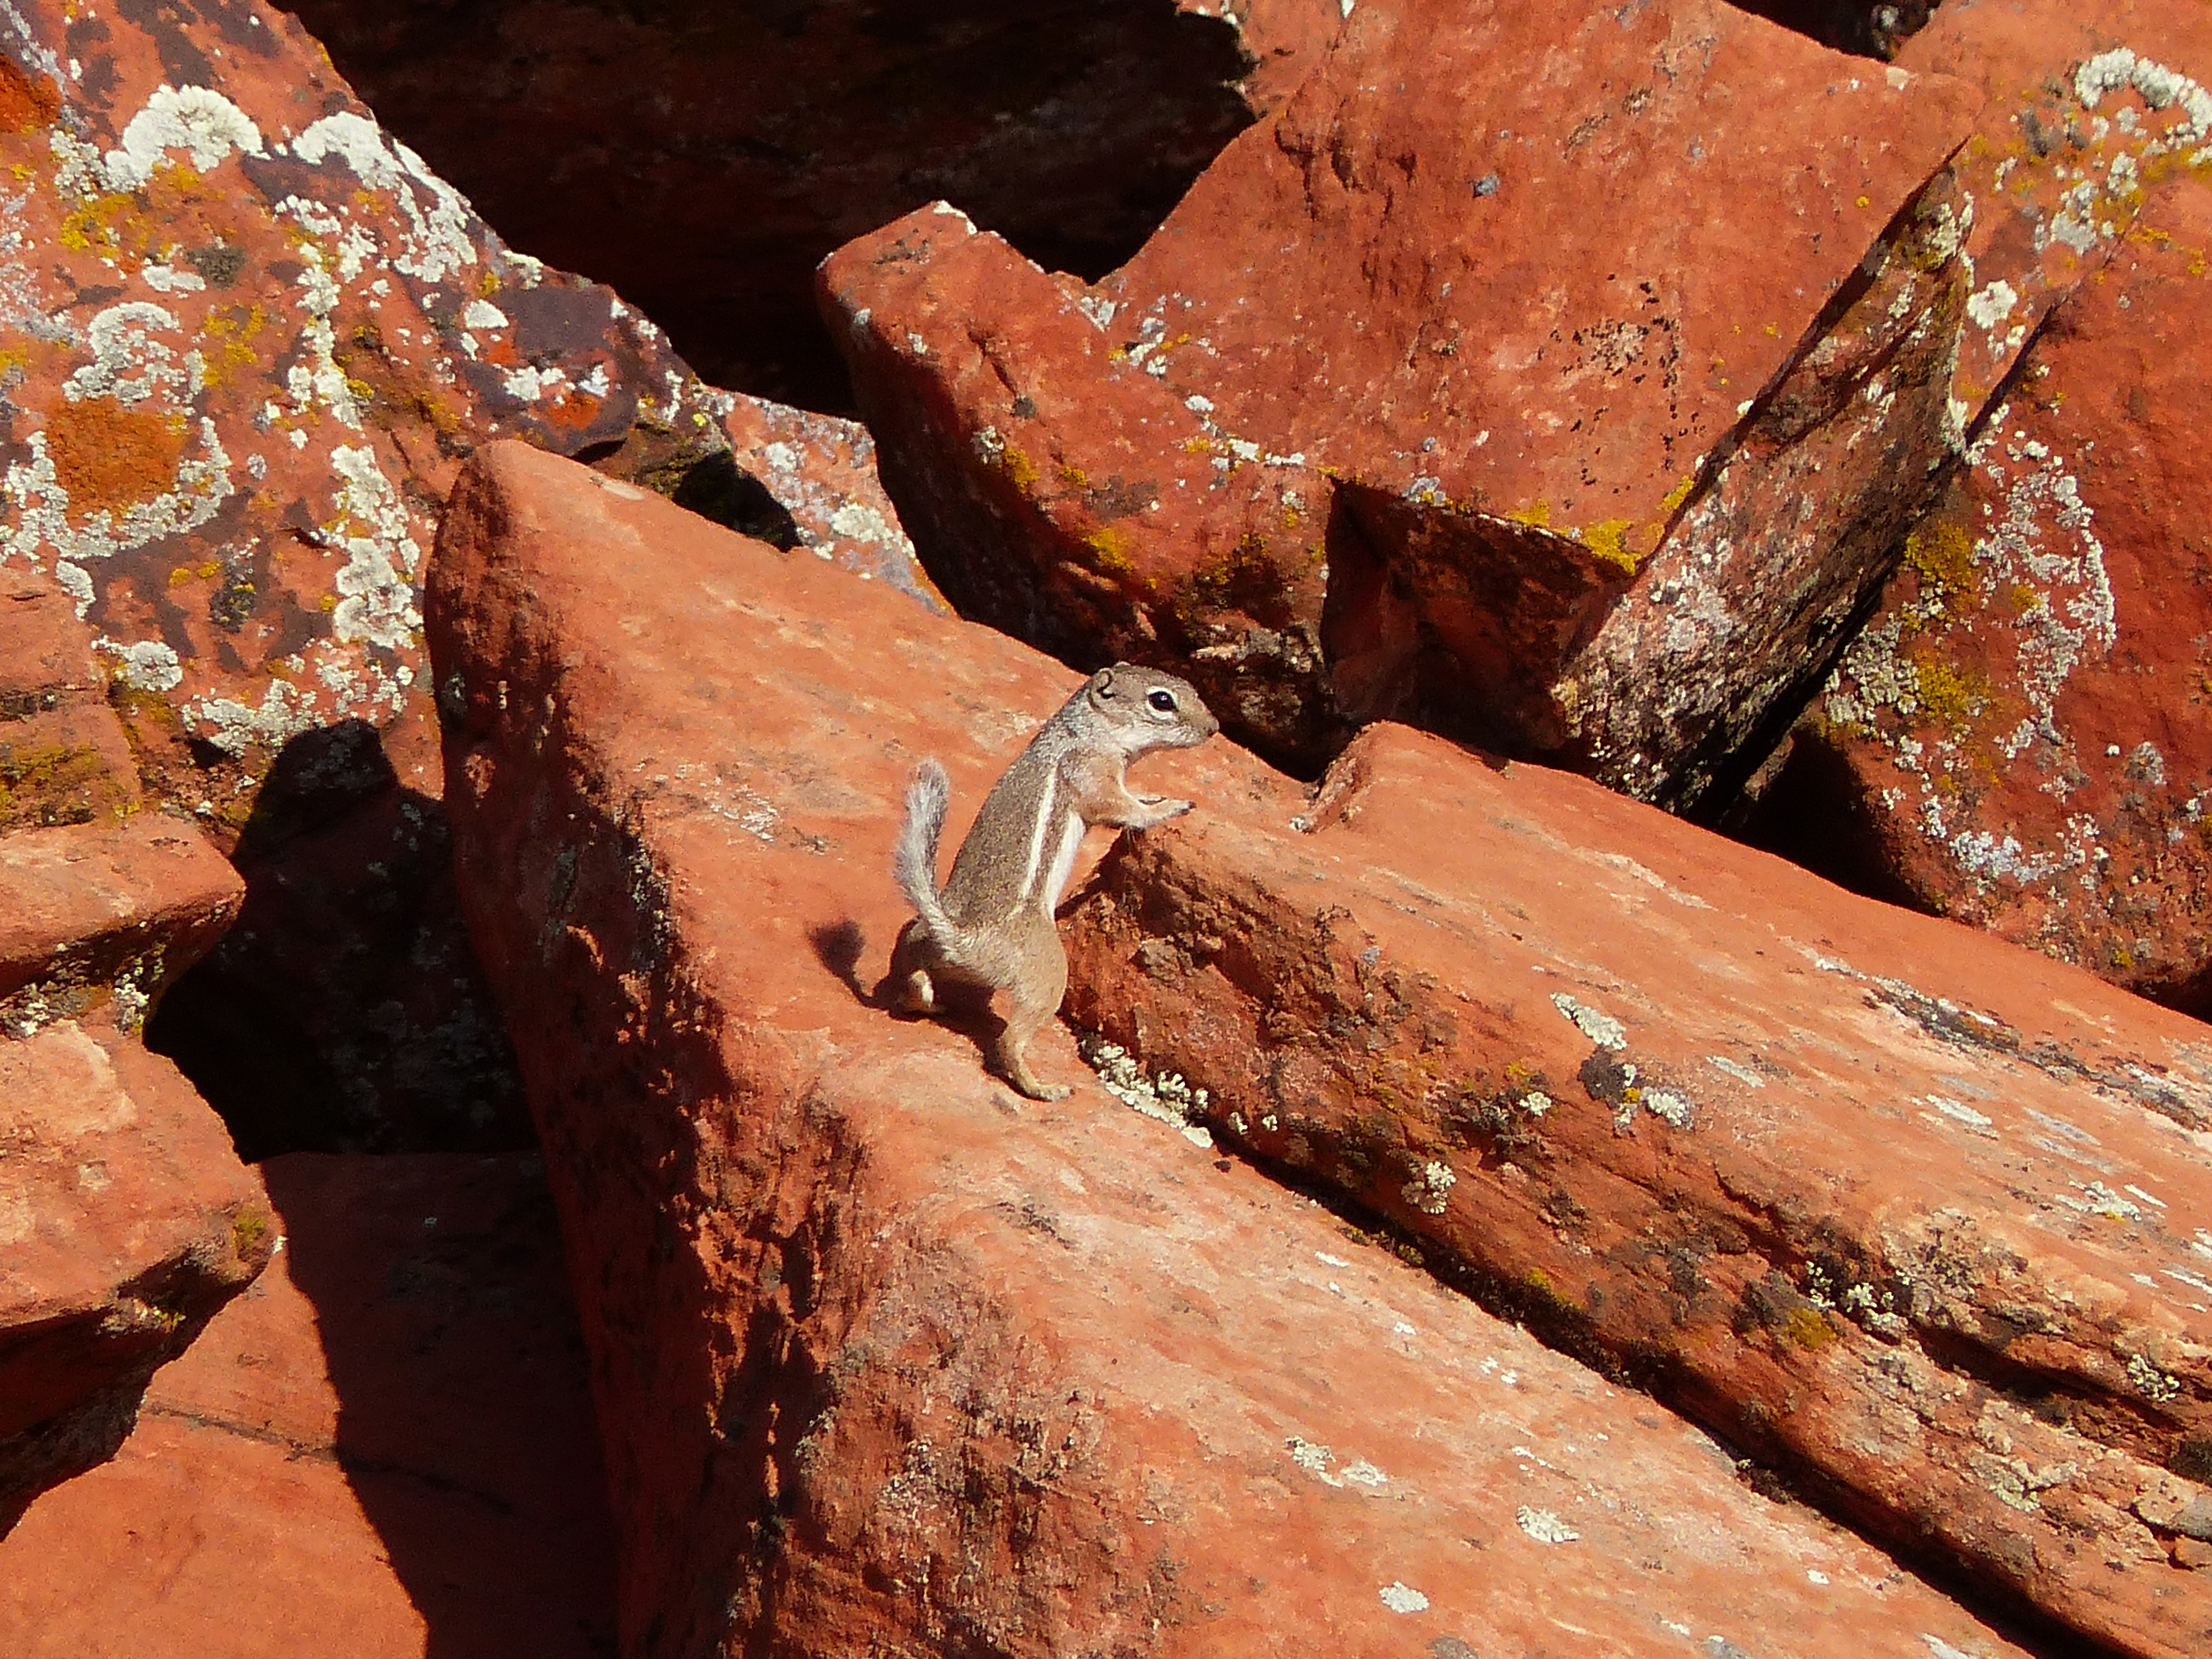 A white-tailed antelope squirrel in the Red Cliffs National Conservation Area, St. George, Utah, photo undated | Photo by John Kellam, Bureau of Land Management, St. George News